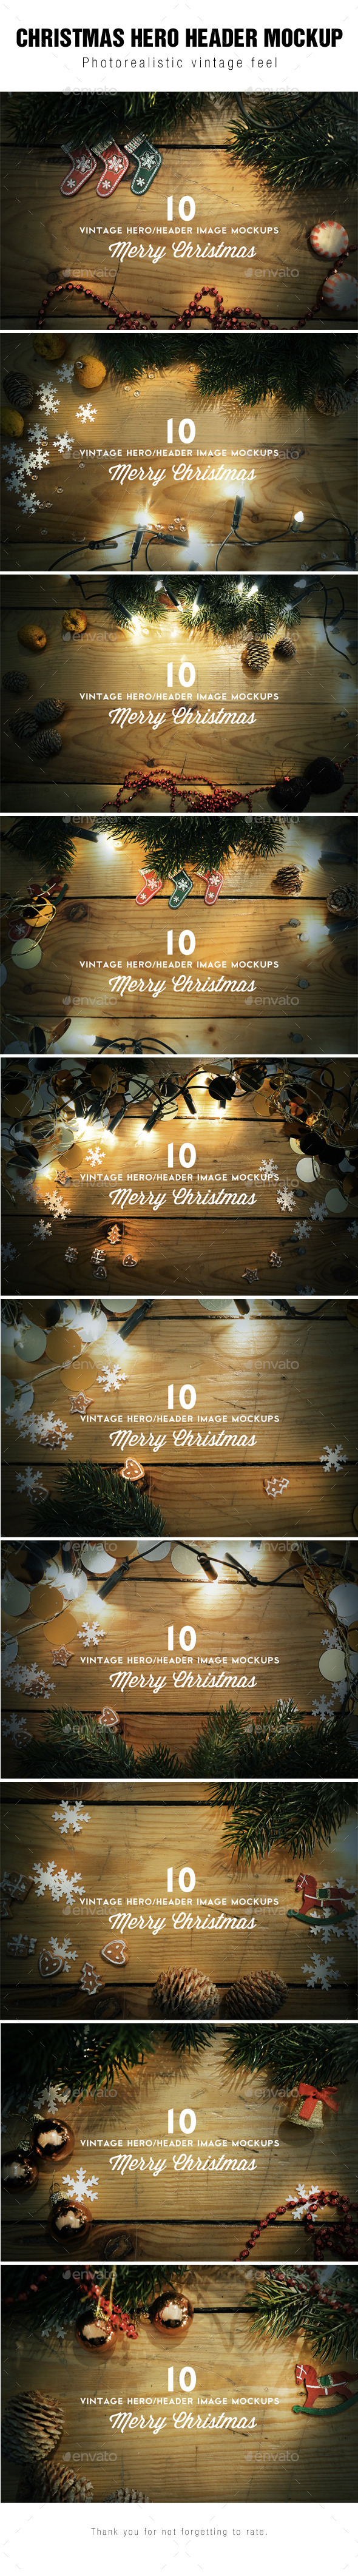 GraphicRiver Christmas Hero Header Images Mockup 9409467